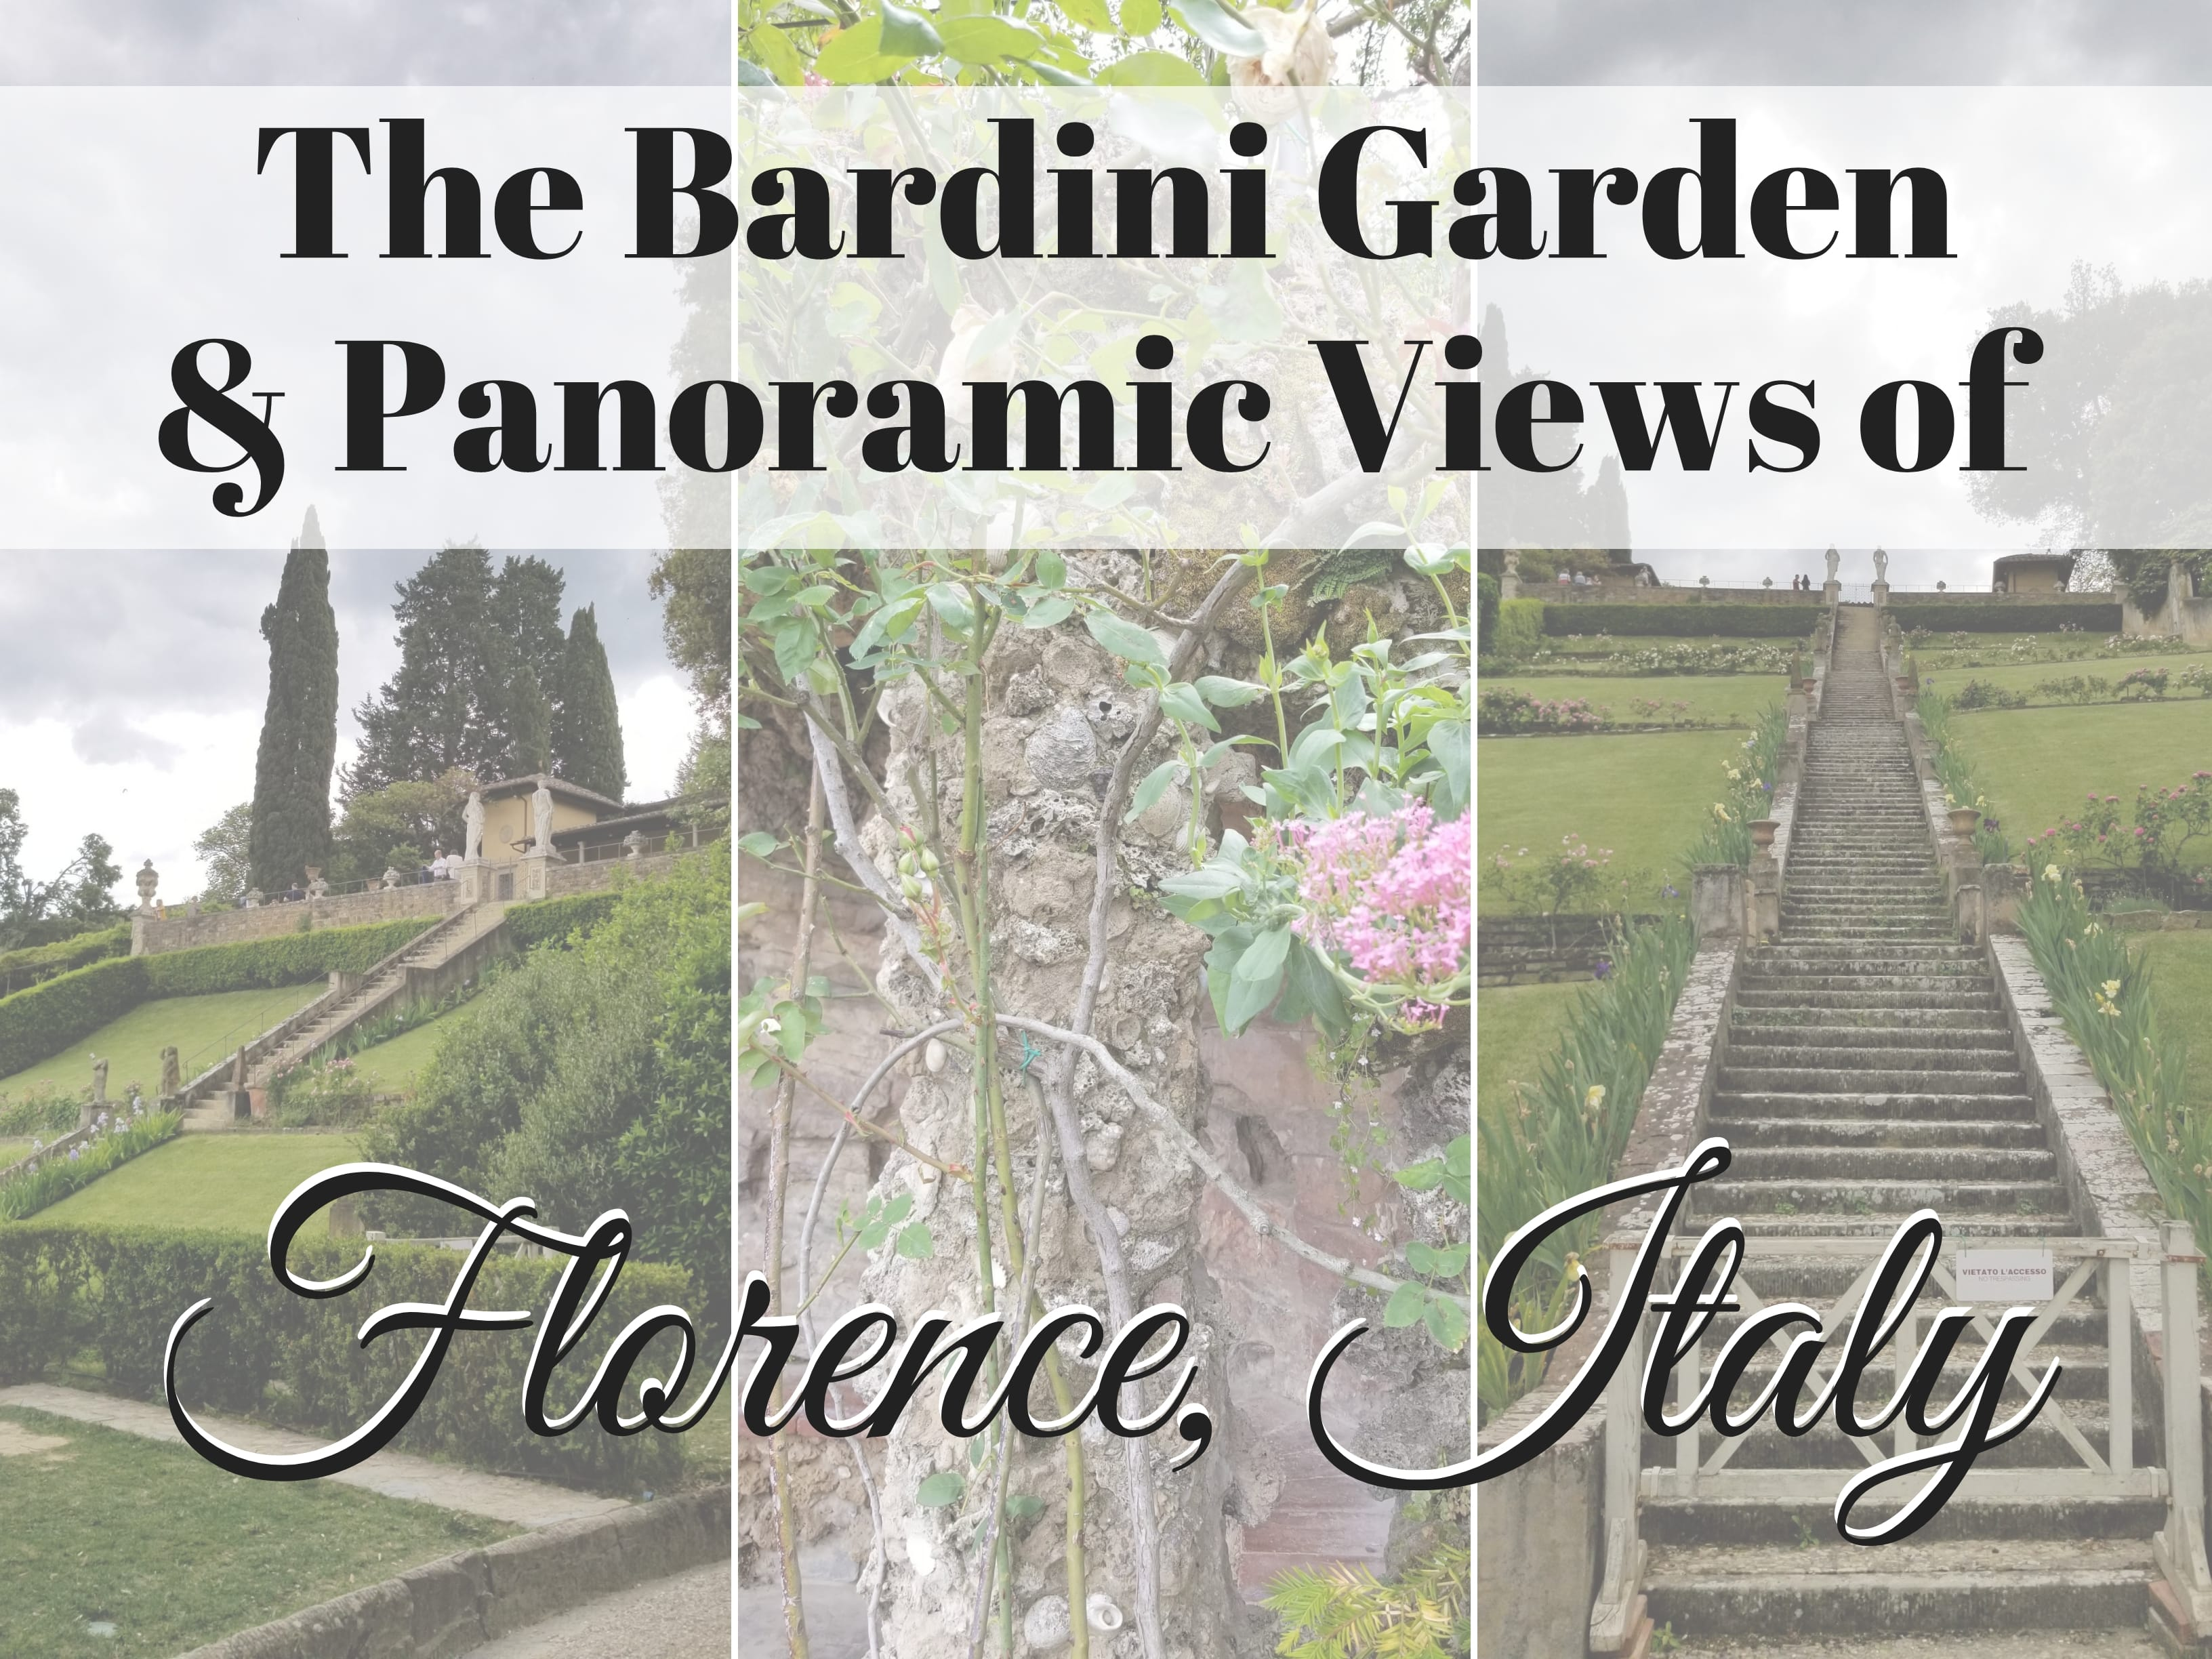 The Bardini Garden in Florence, Italy is a hidden gem with beautiful panoramic views of the city. ouritalianjourney.com; https://ouritalianjourney.com/the-bardini-garden-panoramic-views-of-florence